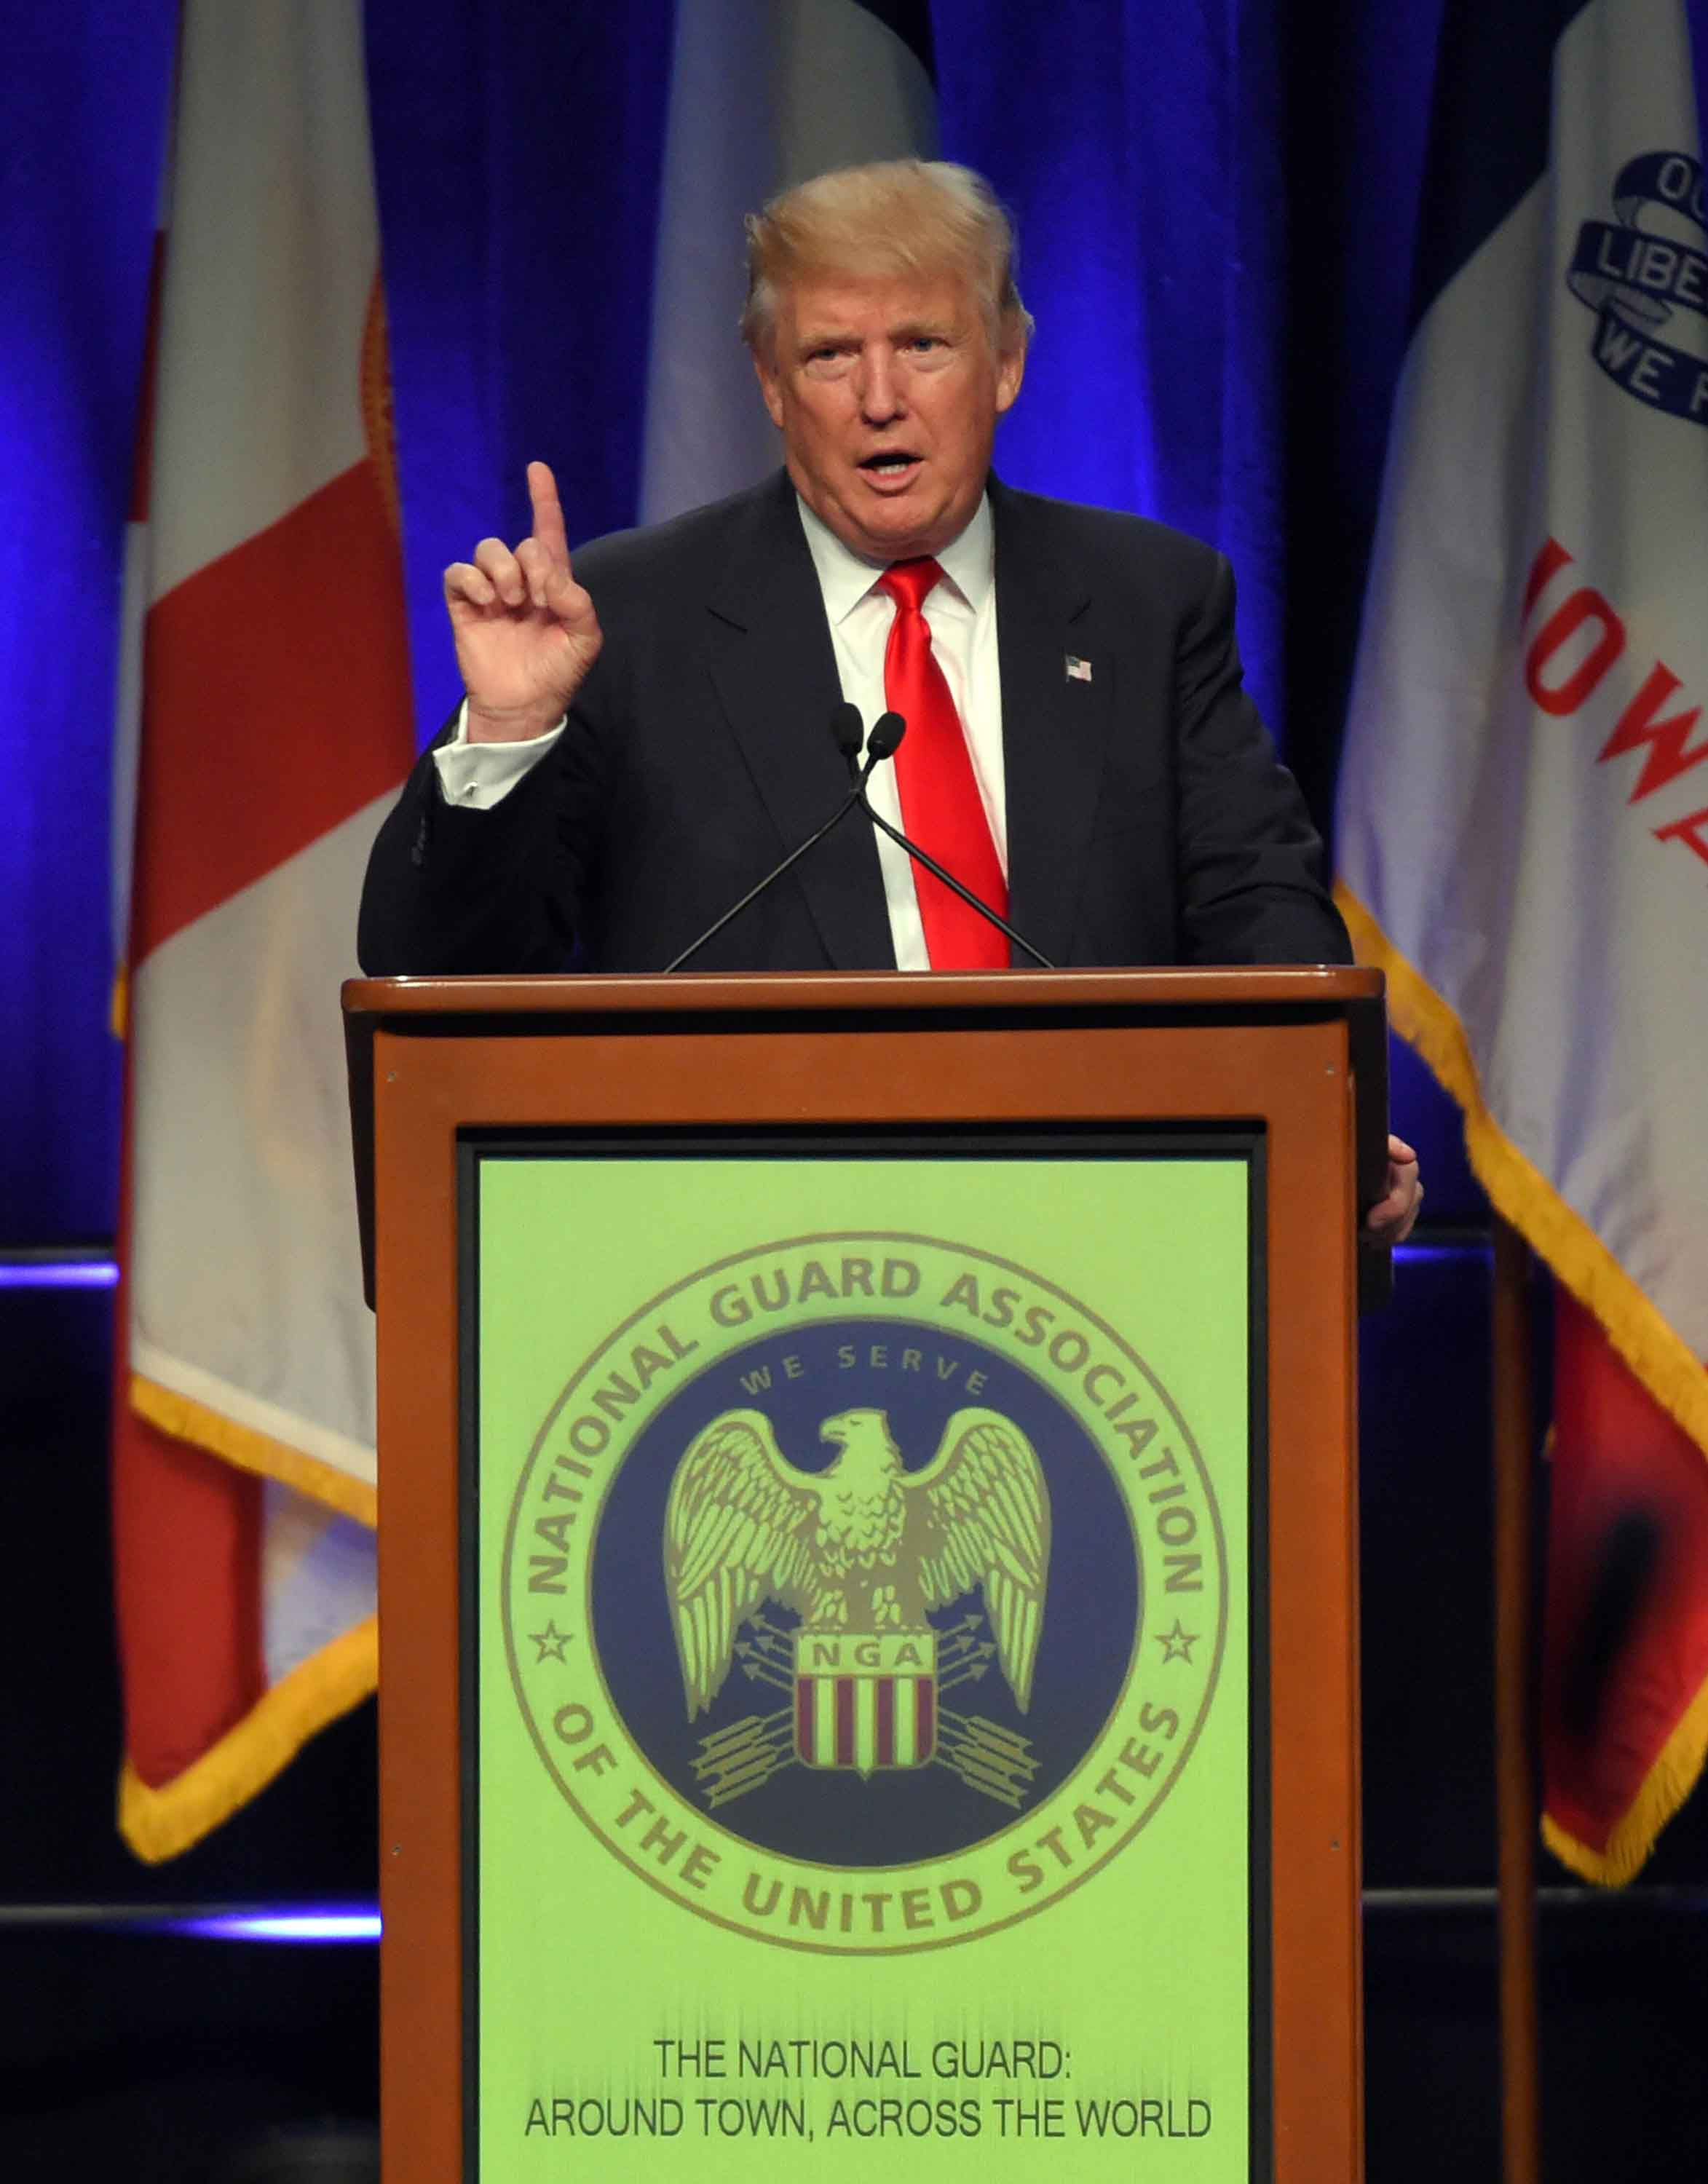 Donald Trump speaks on Monday, Sept. 12, 2016 to the National Guard Association of the United States conference, held in Baltimore, Md. (Lloyd Fox/Baltimore Sun/TNS)